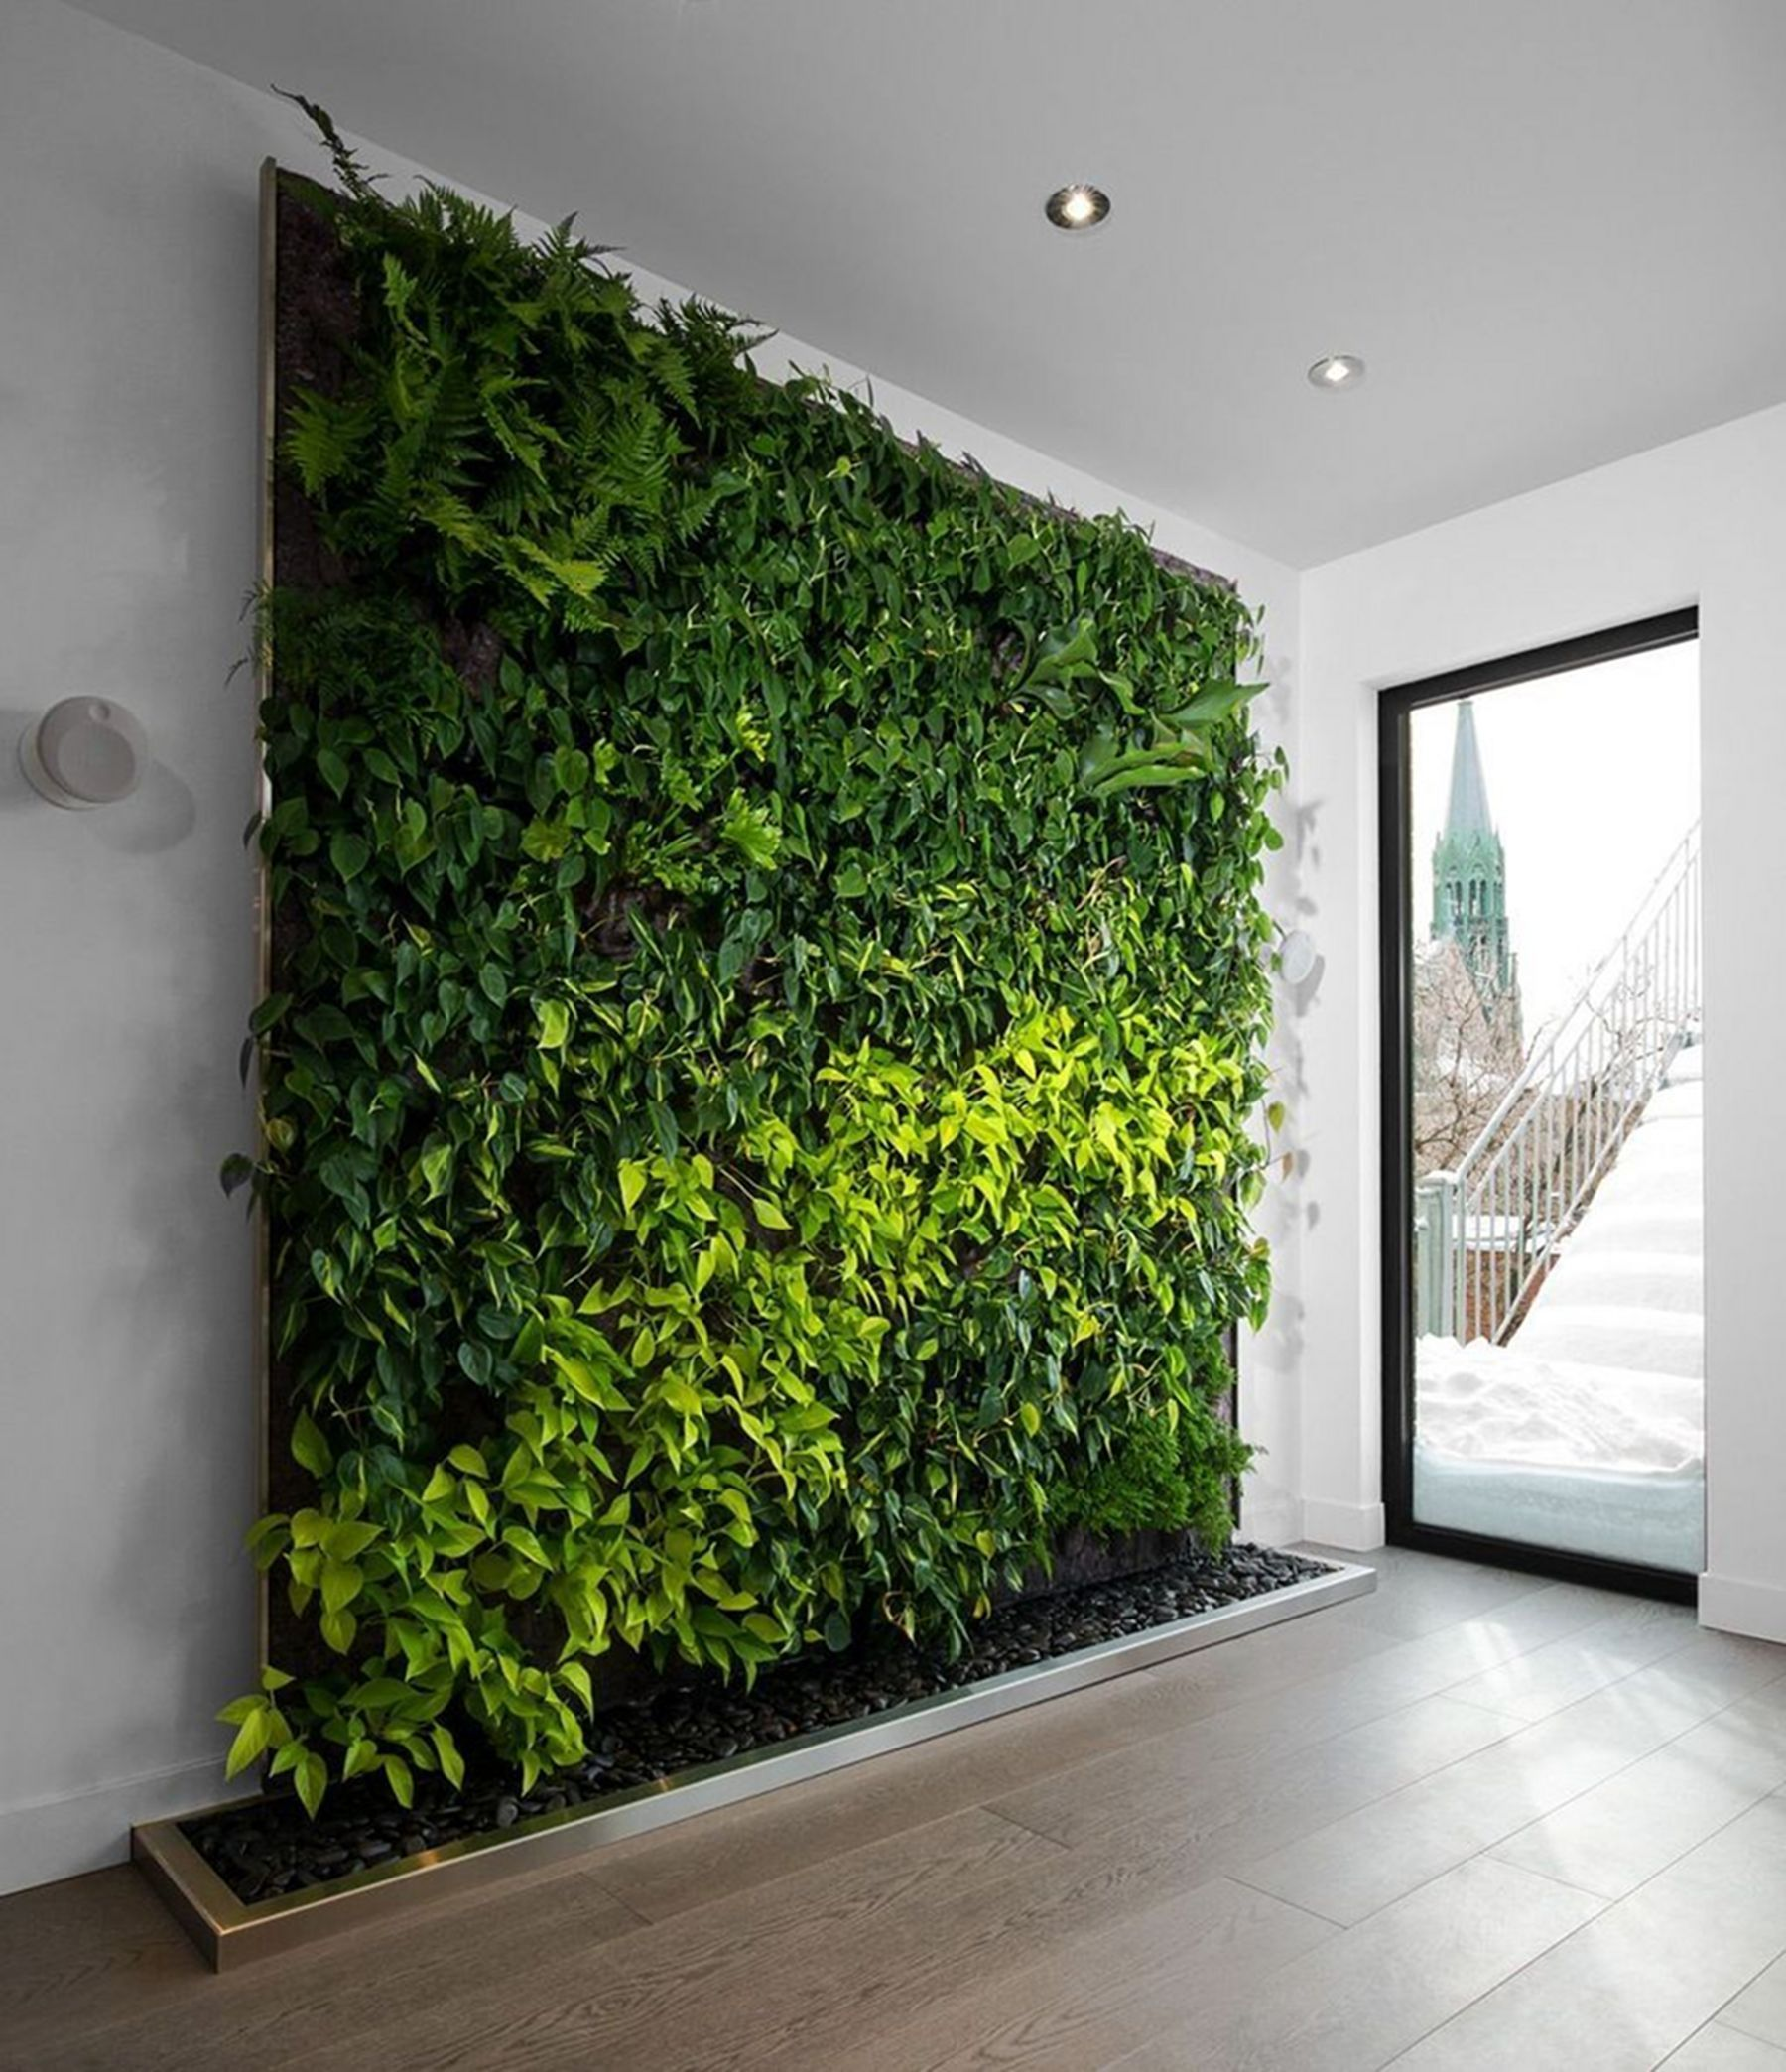 Indoor Plant Wall Decor Ideas Ailable If You Are Looking For Modern Wall Art You Will Find Man In 2020 Vertical Garden Indoor Green Wall Garden Vertical Garden Wall